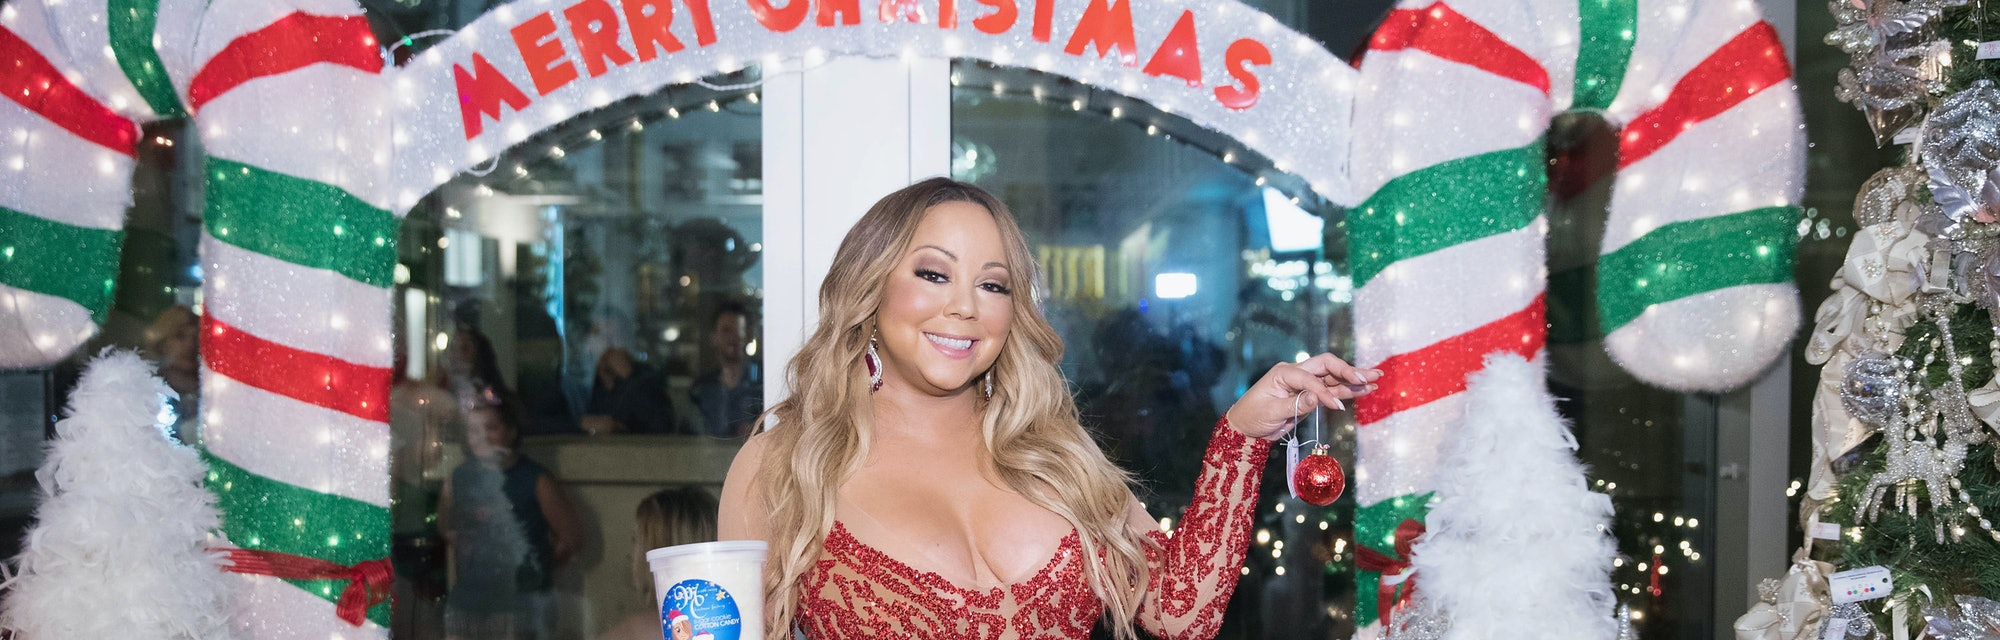 Mariah Carey is saving Christmas with a new AppleTV+ Christmas special.